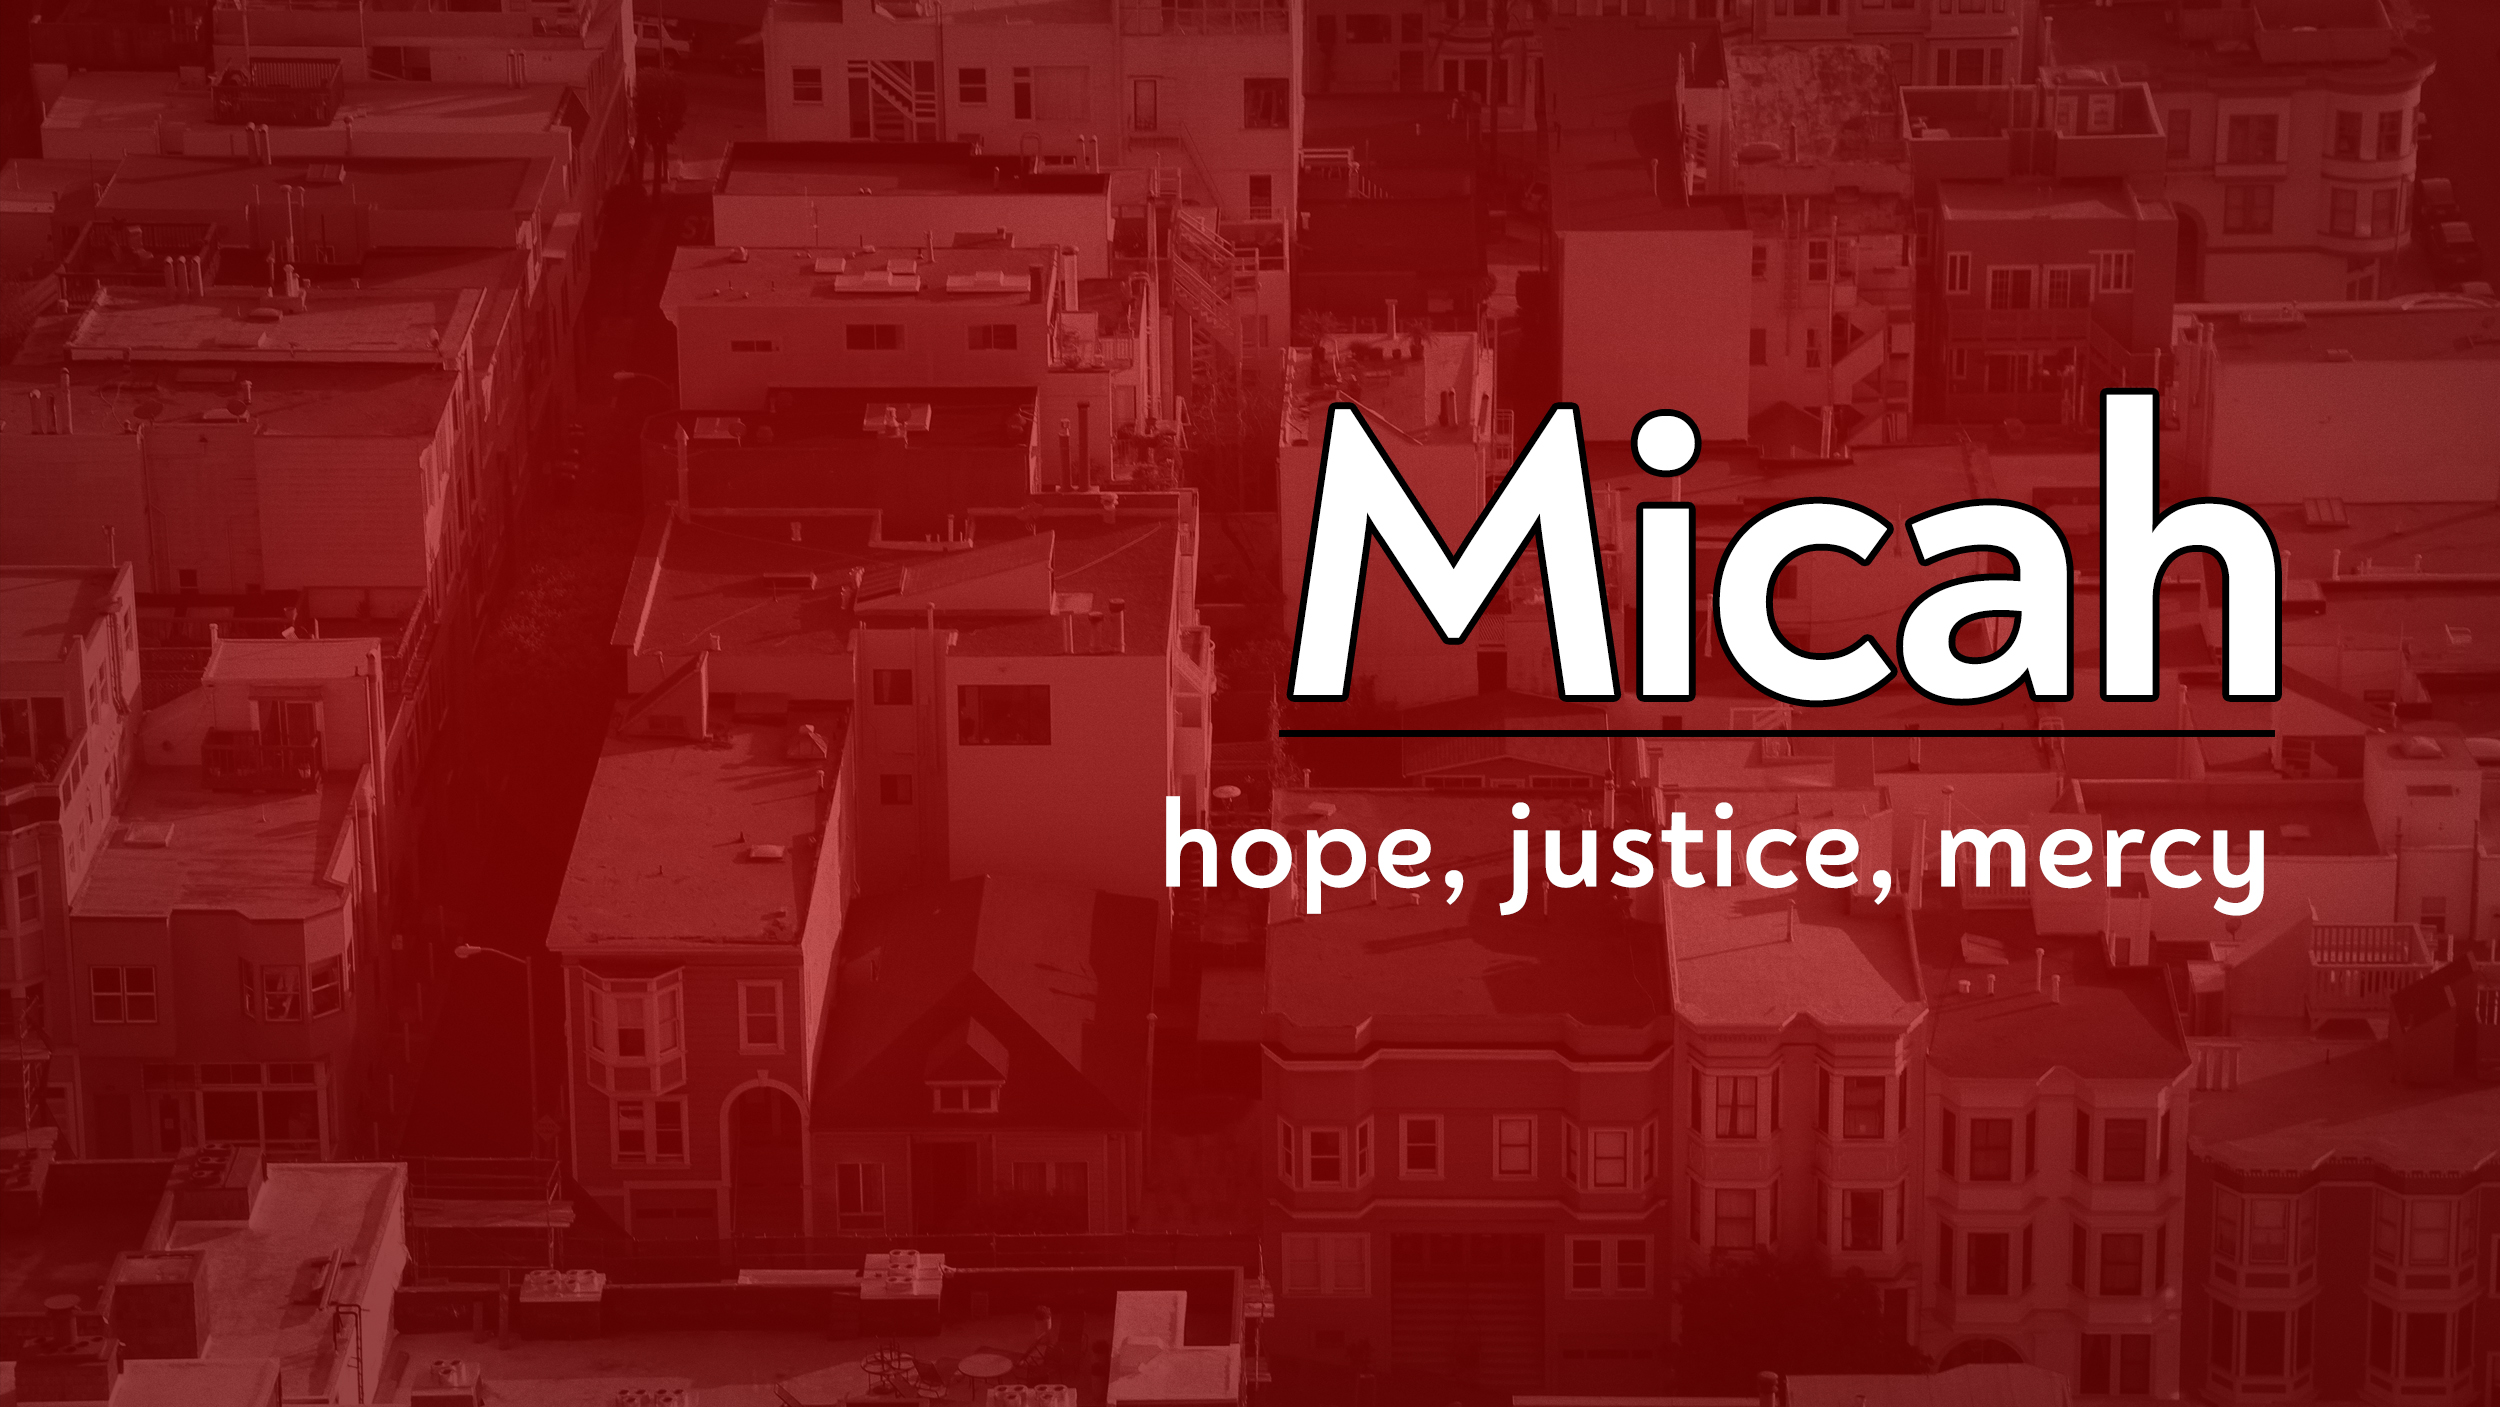 Micah teaches us to put our hope in God, in His justice and His mercy. That then allows us to be just and merciful despite our circumstances.